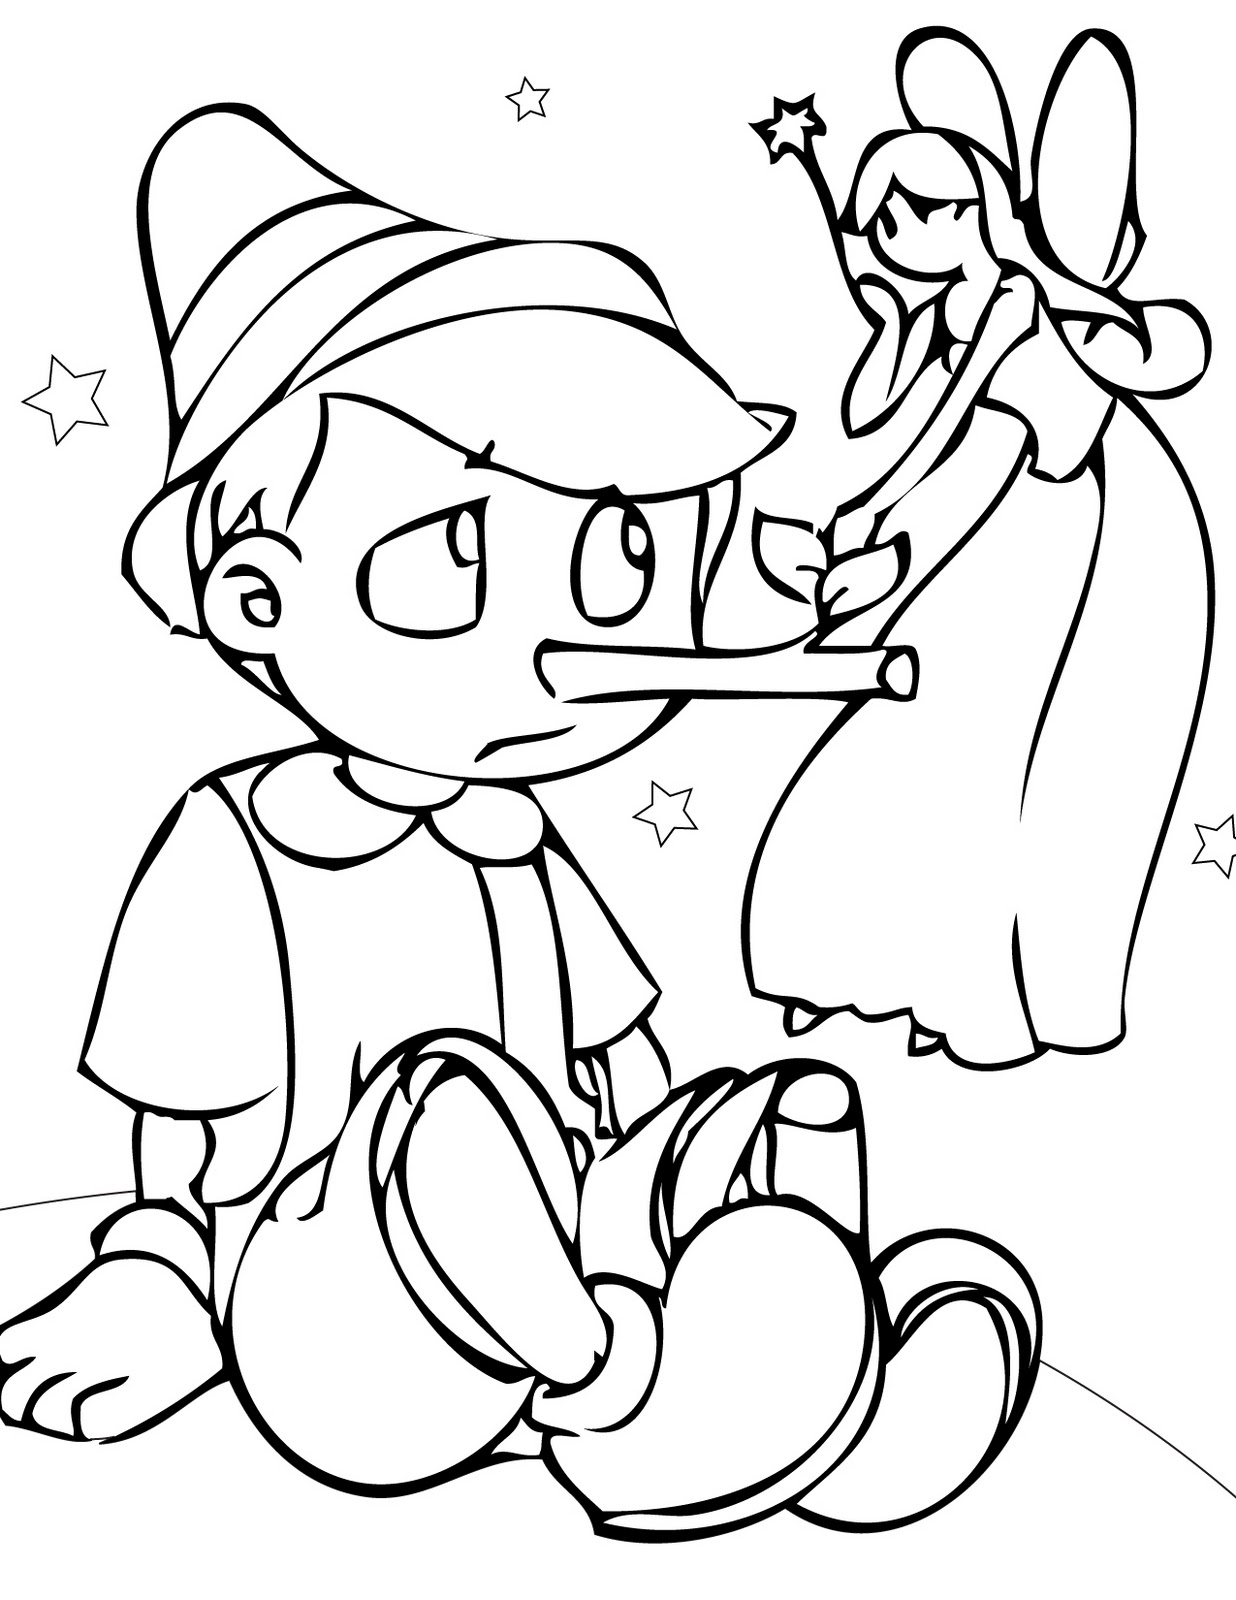 character coloring pages disney cartoon characters coloring pages for kids coloring character pages